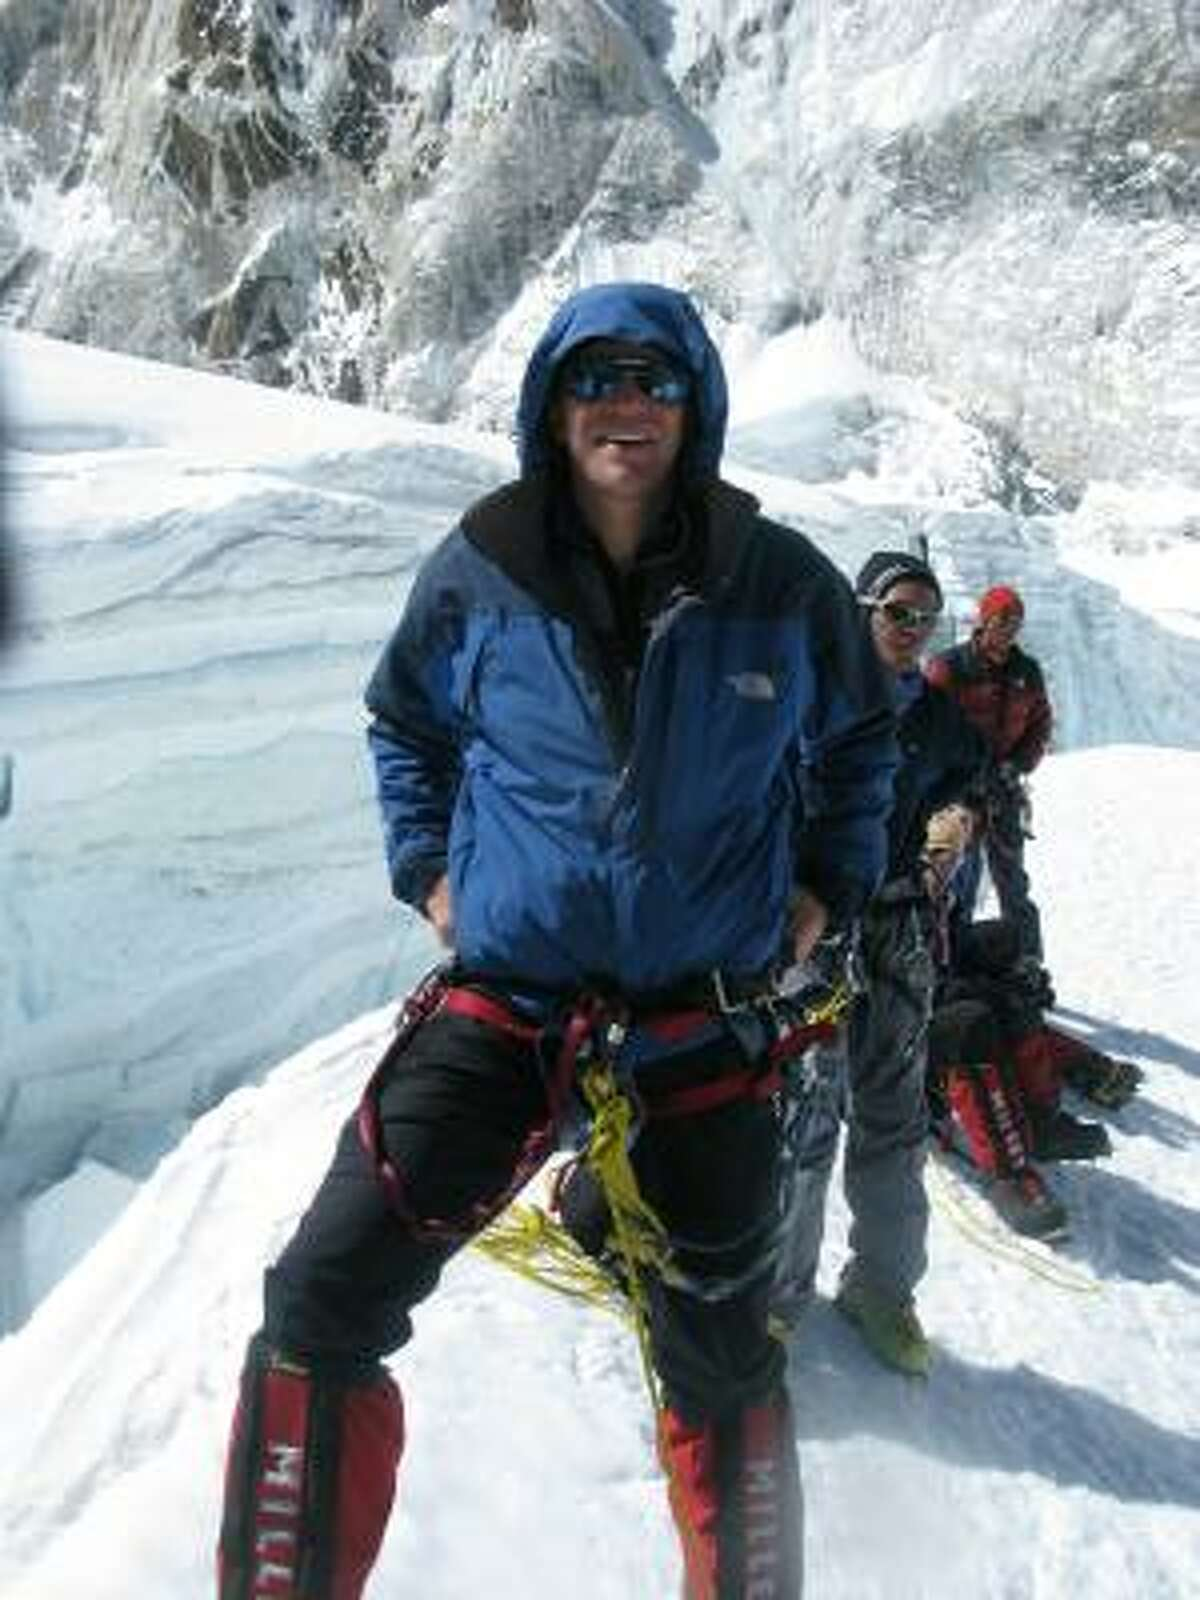 Parazynski left NASA in 2009 to climb Mount Everest in the Himalayas.